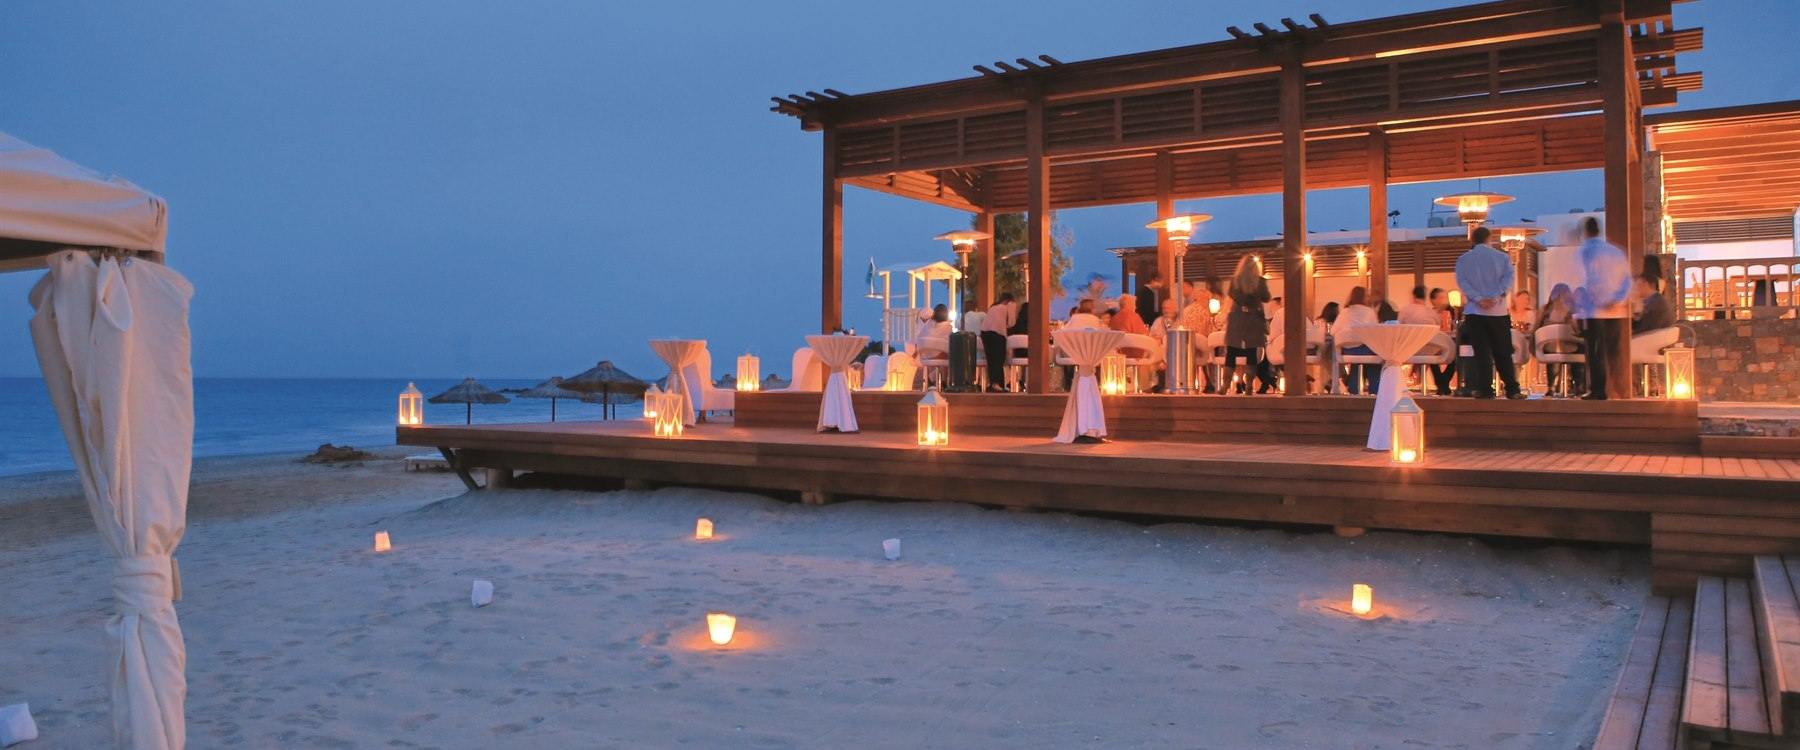 Beach Bar and Sunset Lounge at Amirandes Grecotel Exclusive Resort, Crete, Greece